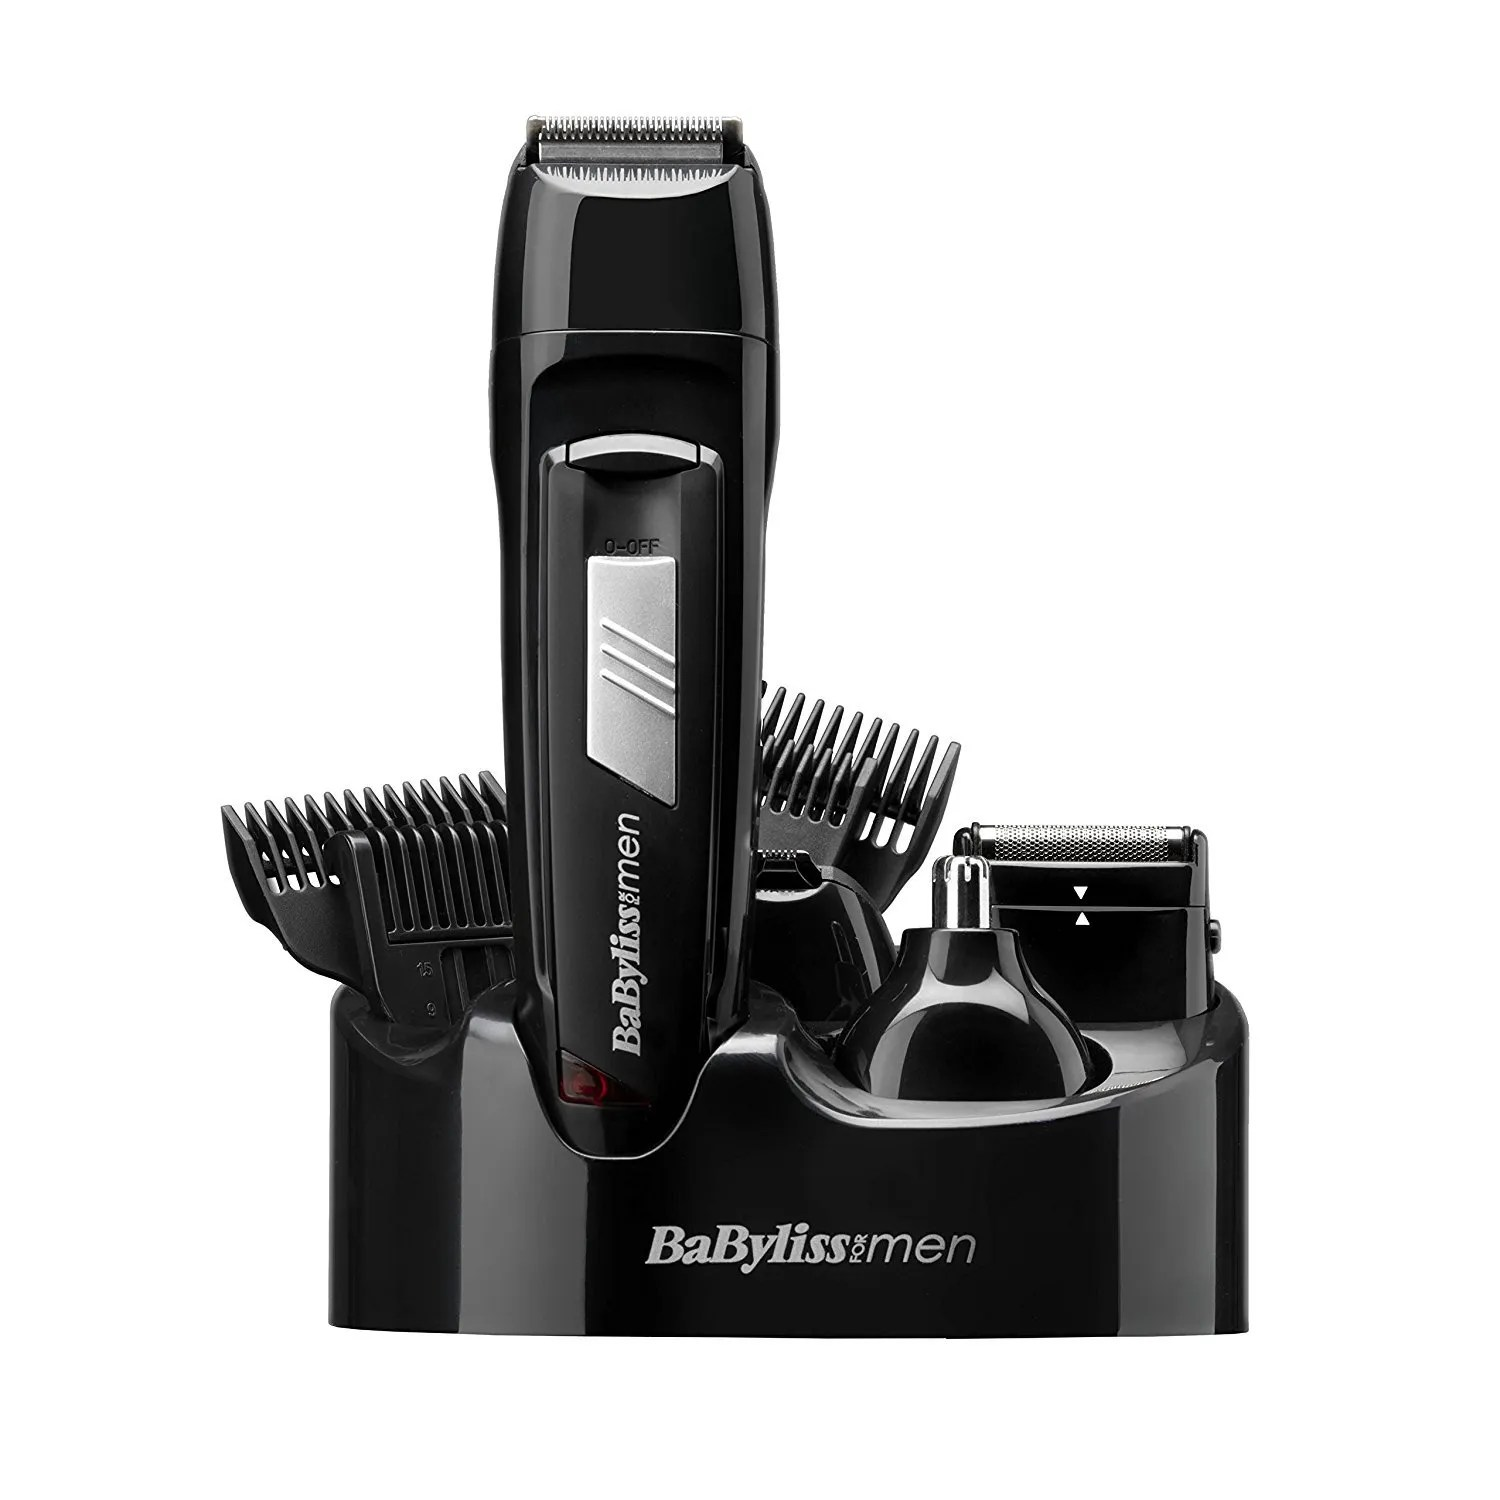 Babyliss 7056CU Cordless Rechargeable 8 In 1 All Over Grooming Kit UK Review